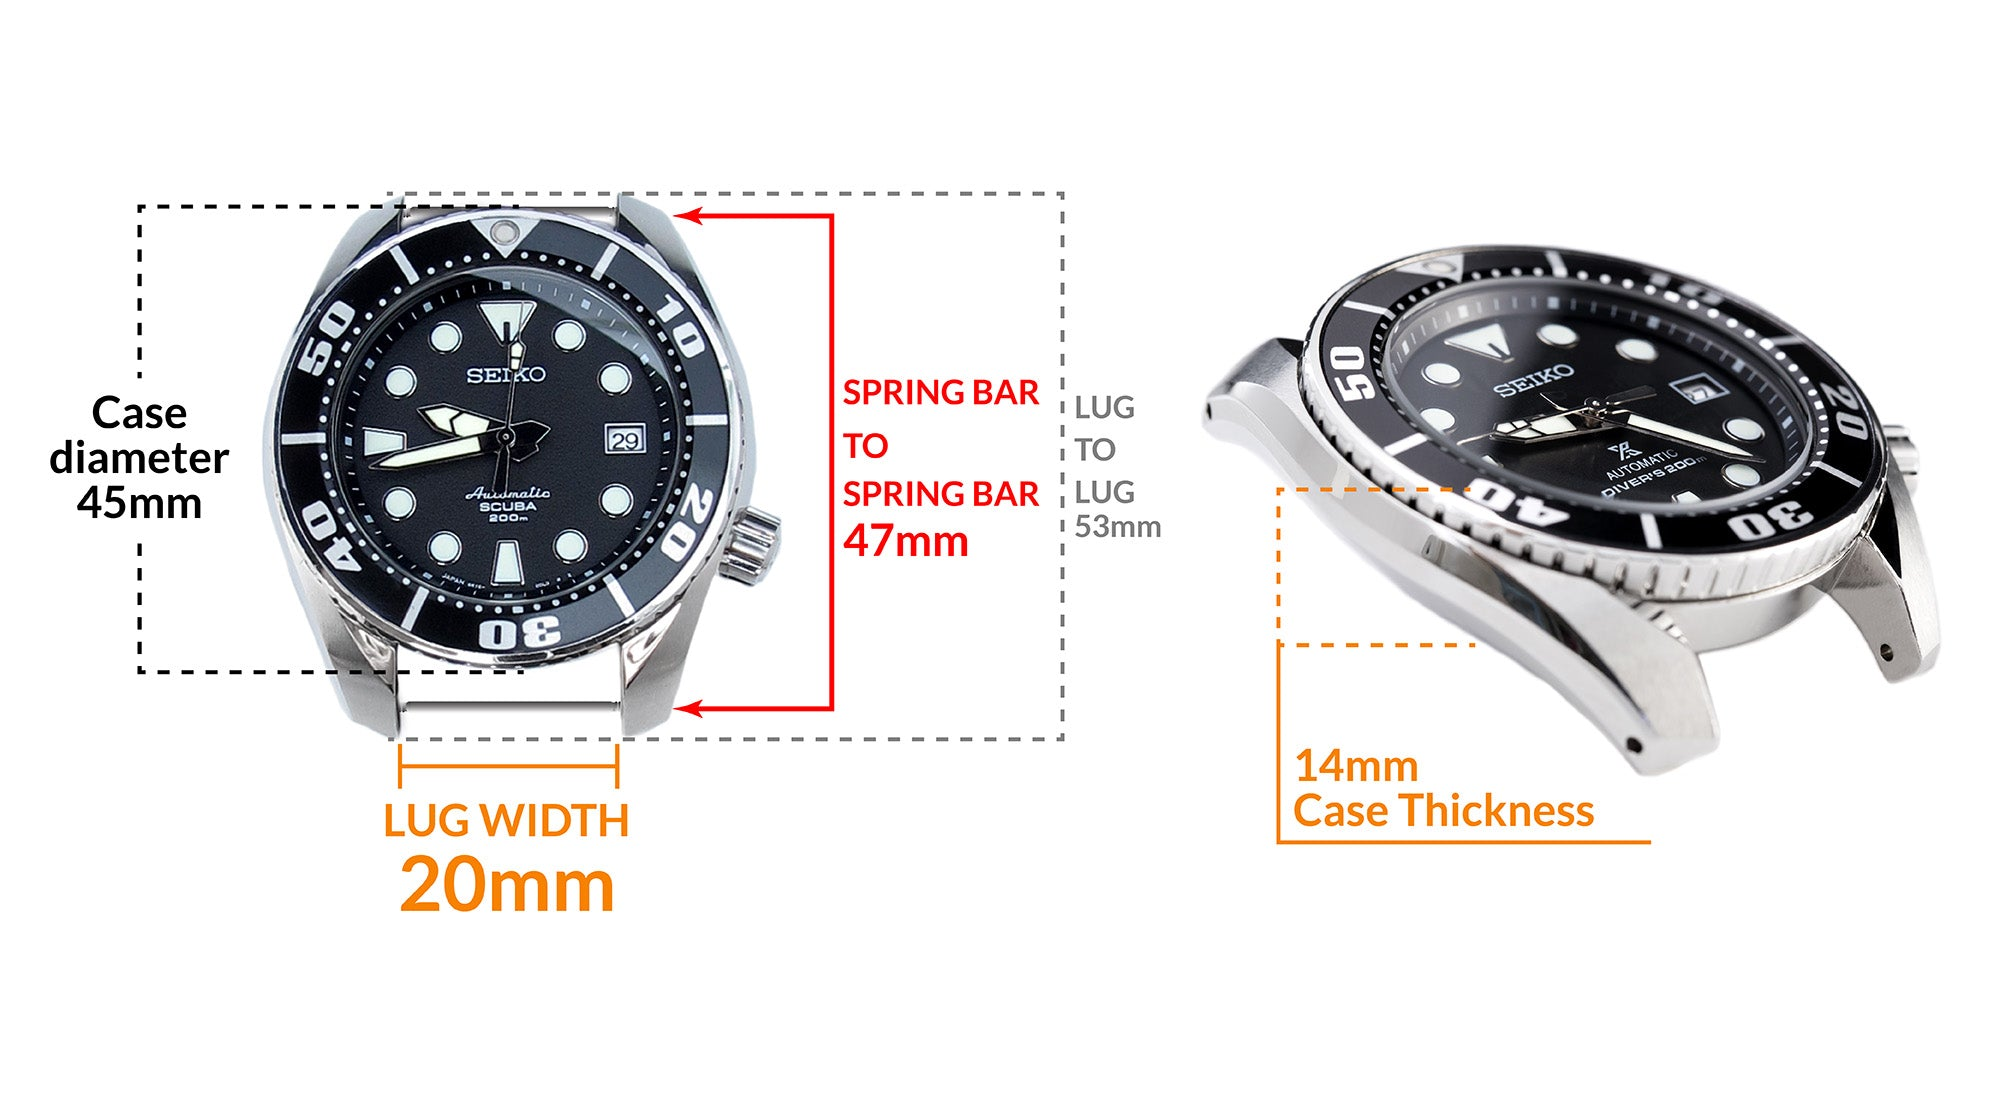 Seiko Prospex SBDC031 Black Sumo- Details Seiko watch size, Lug width and case dimensions